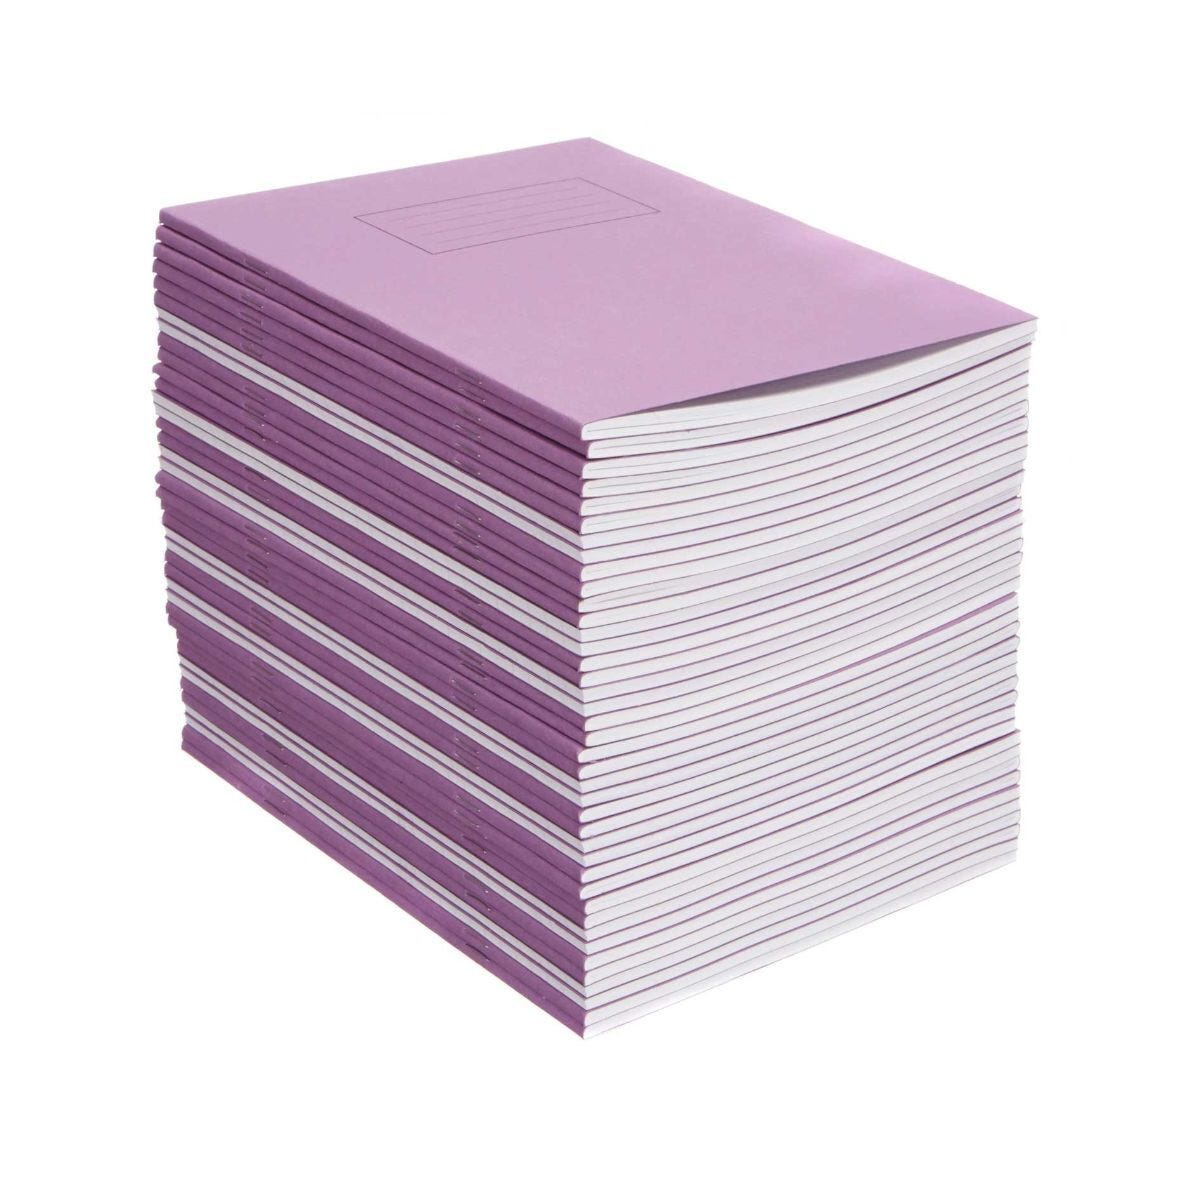 Silvine Exercise Book 9 Inch x 7 Inch Ruled 75gsm Pack of 40